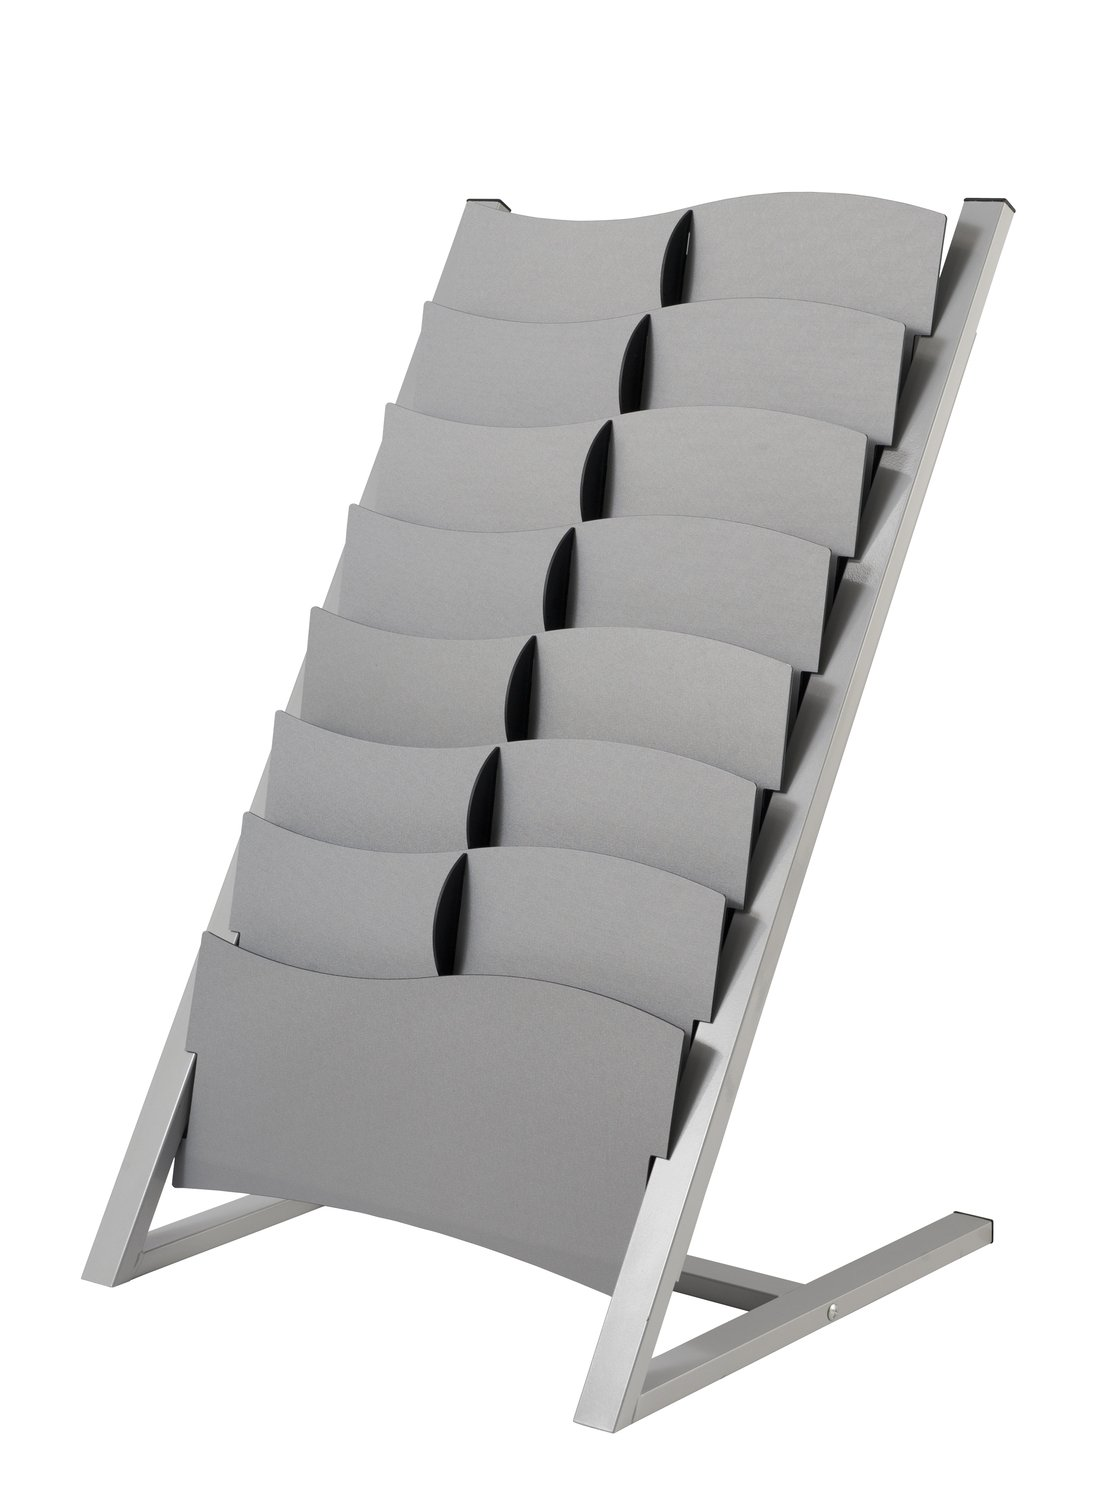 PaperFlow Multi-Sized 7 Compartment Floor Literature Display, Single Sided, 37.4x23x22 Inches, Silver (2860.35)